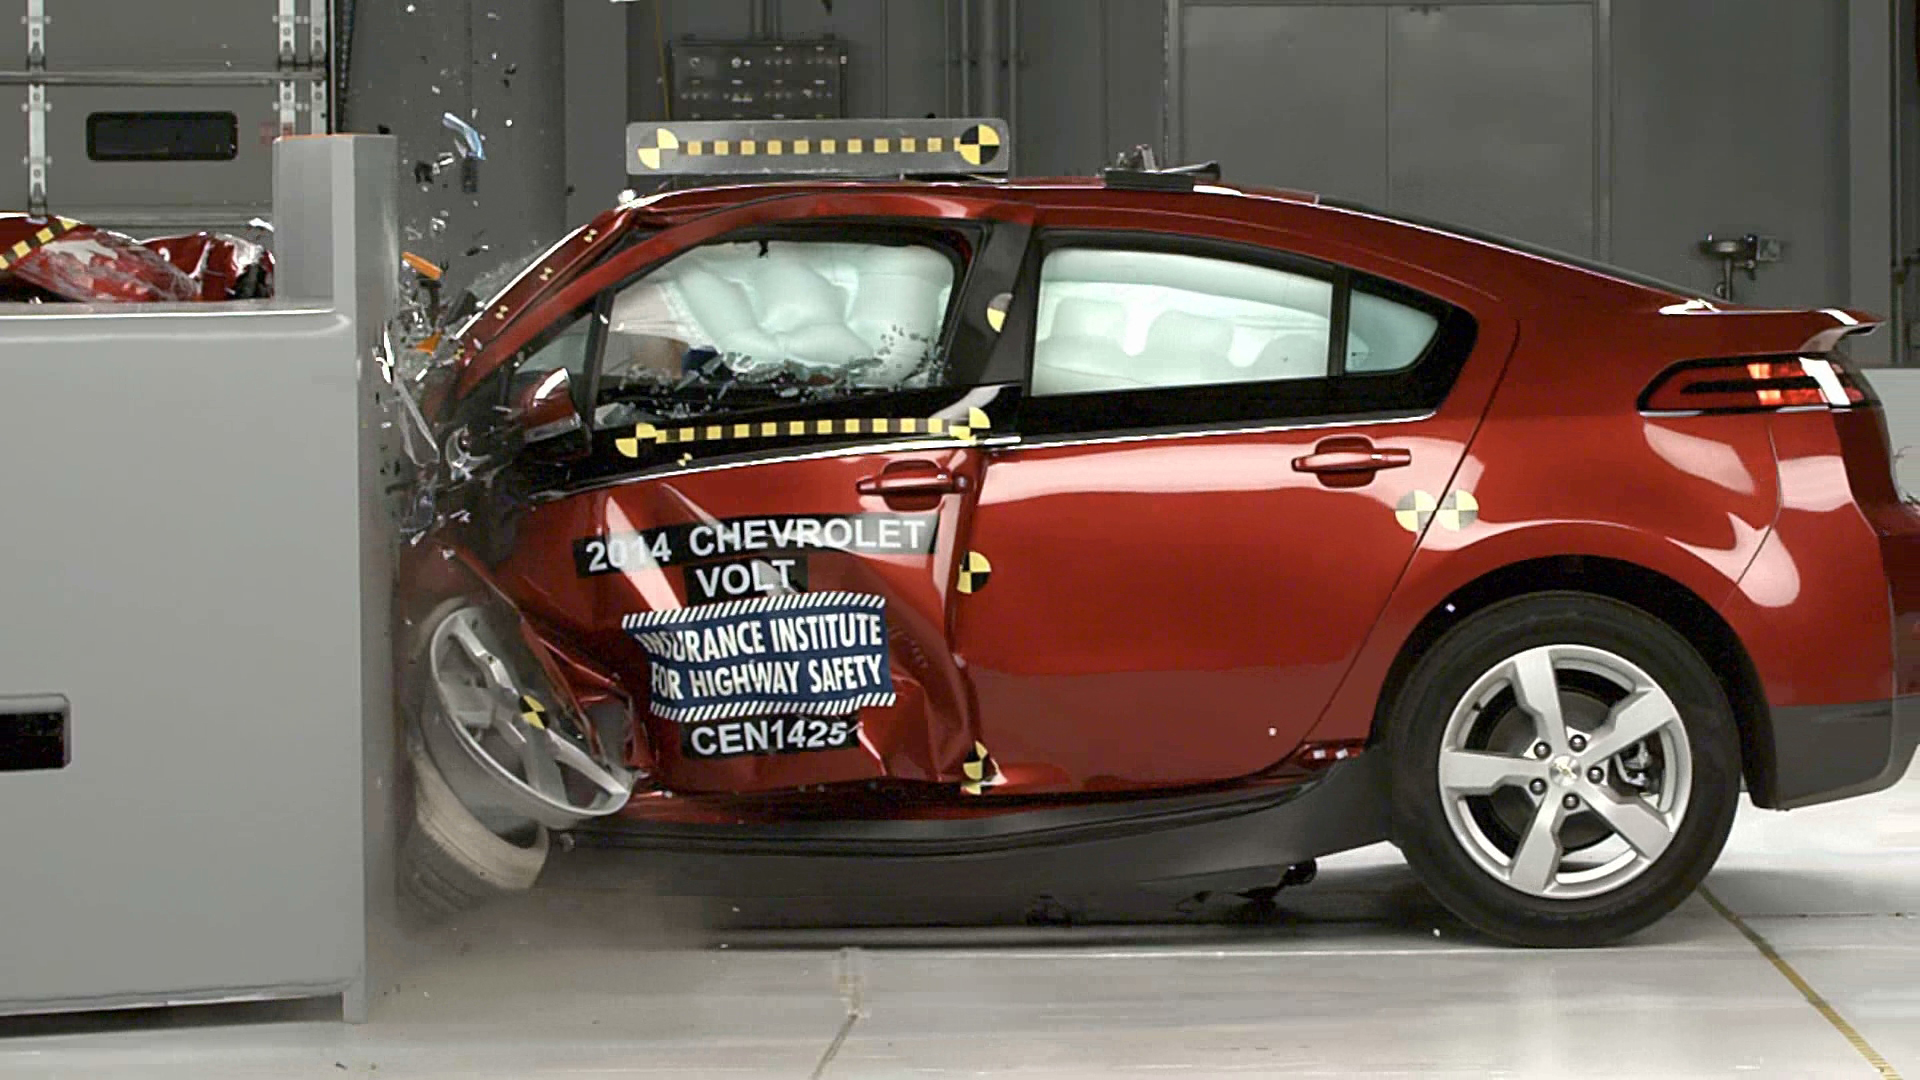 2014 Chevy Volt Earns a Top Safety Pick+ rating